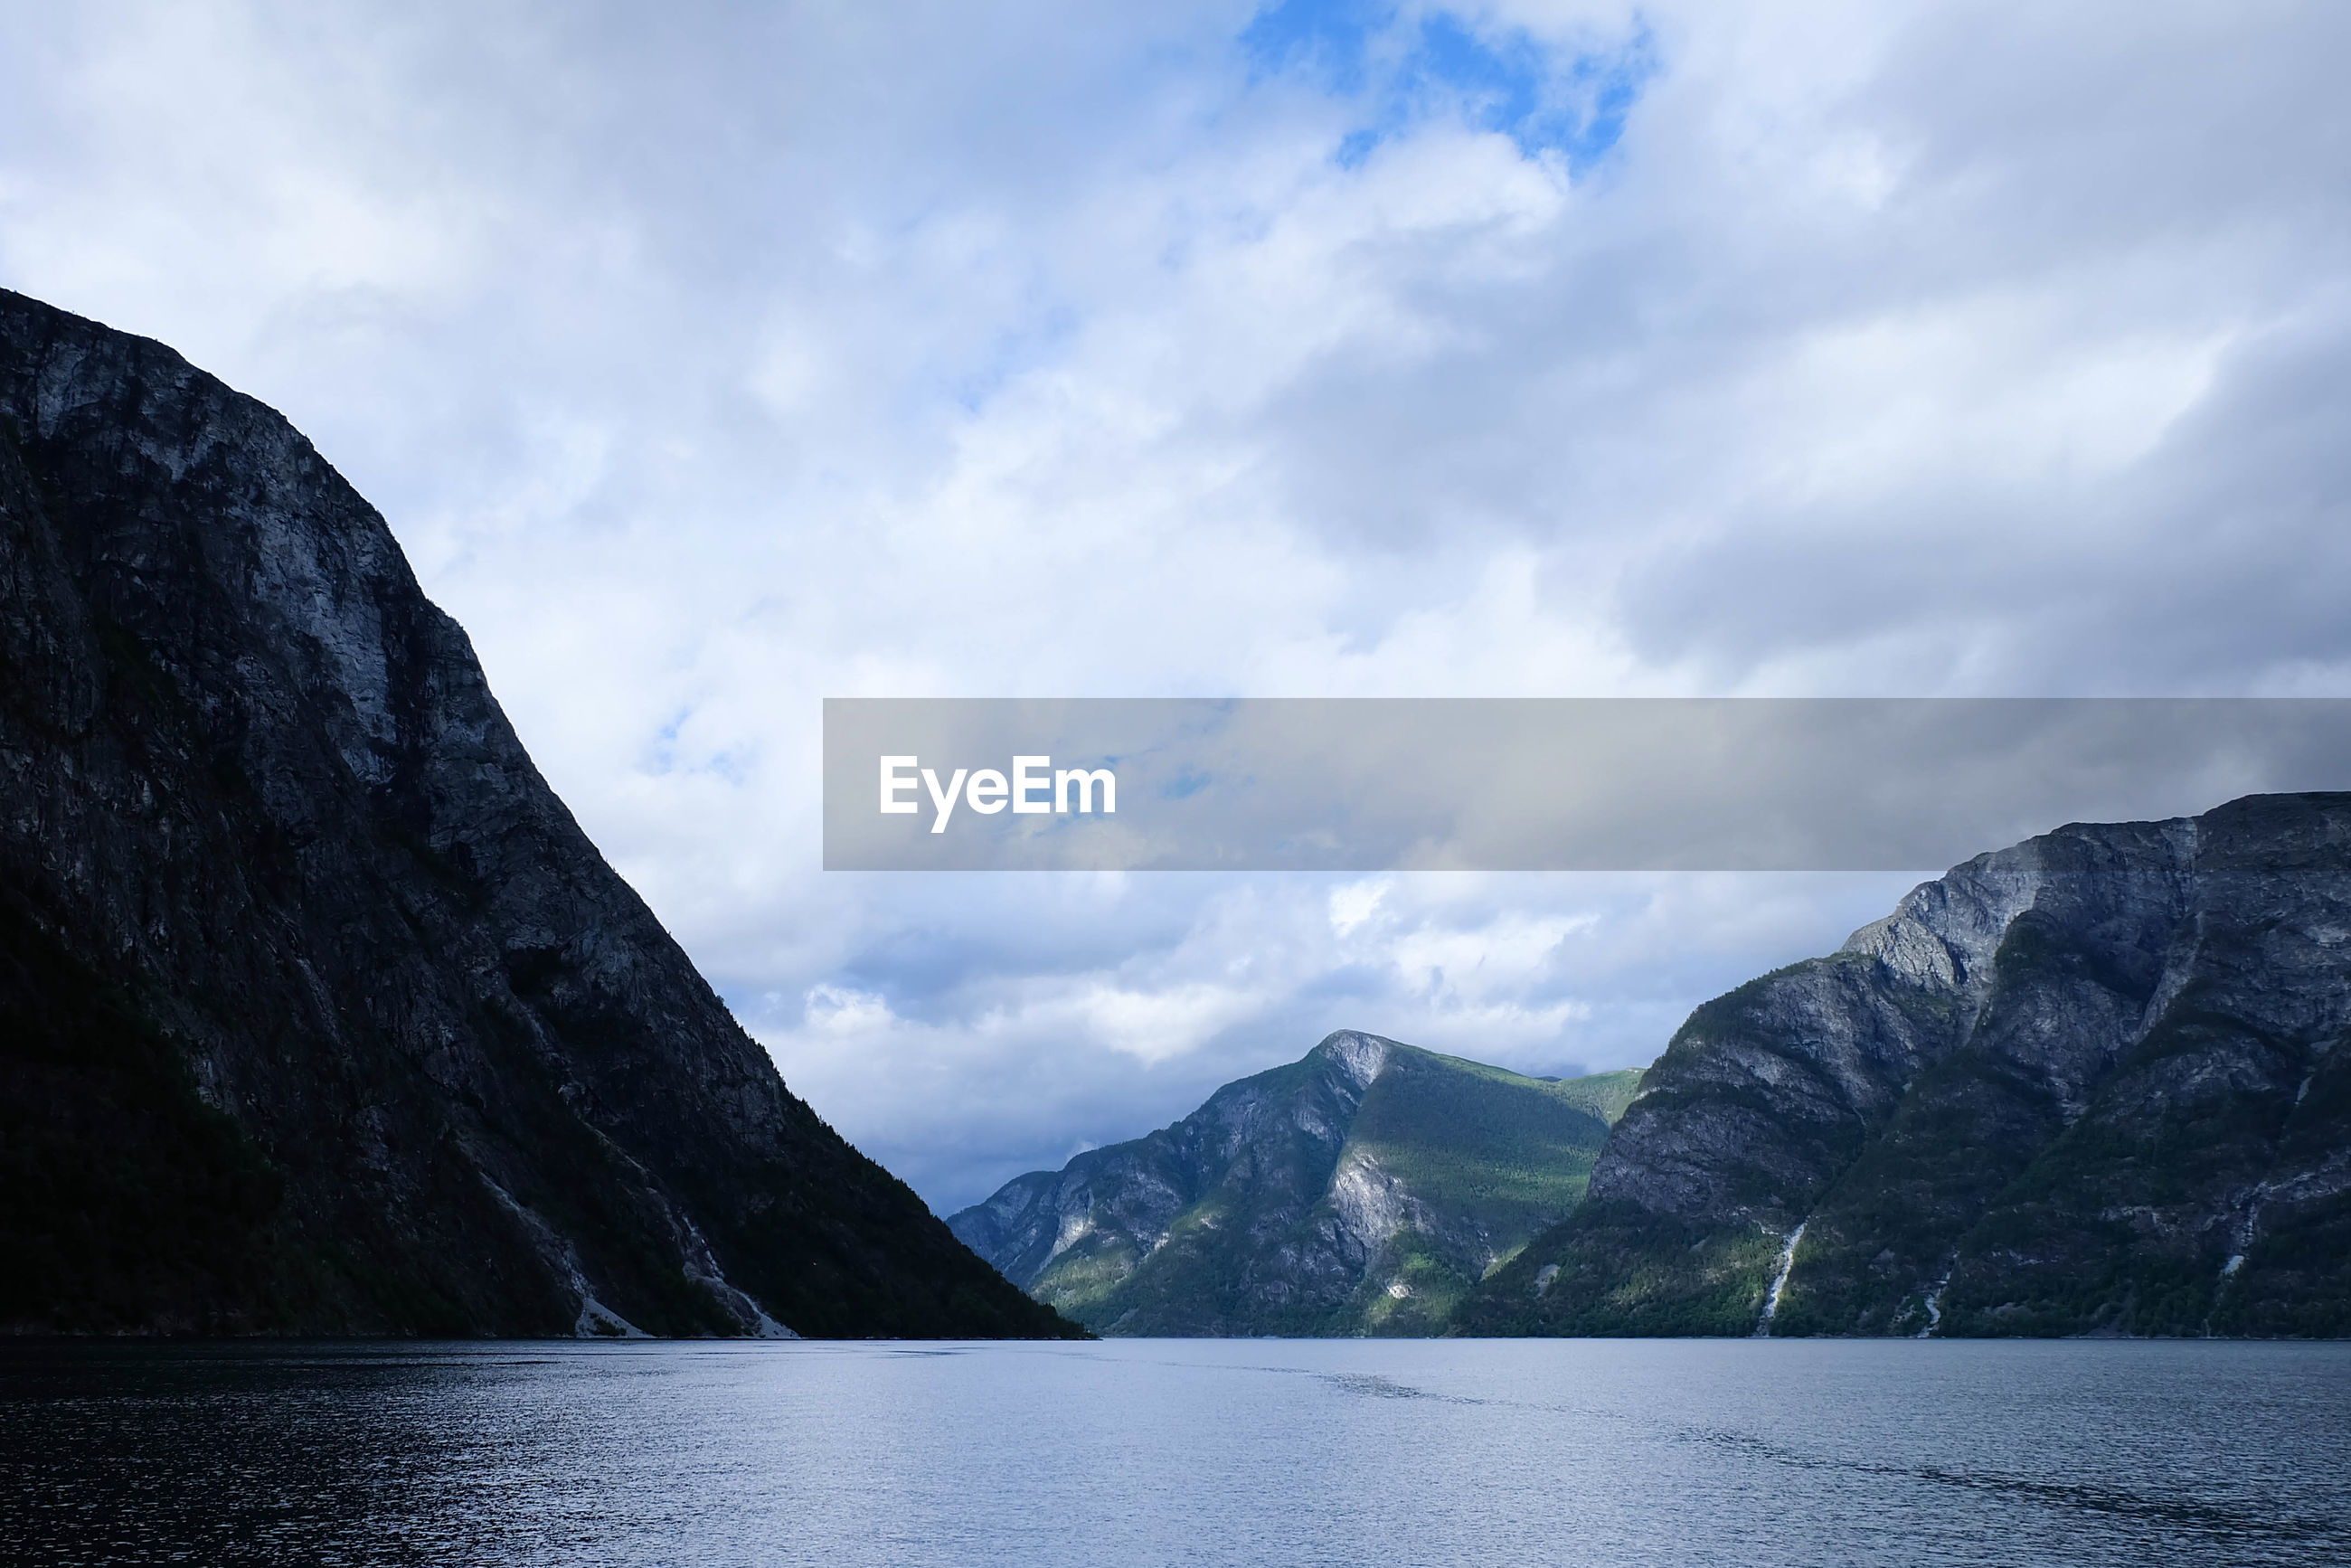 Scenic view of lake and mountains against cloudy sky